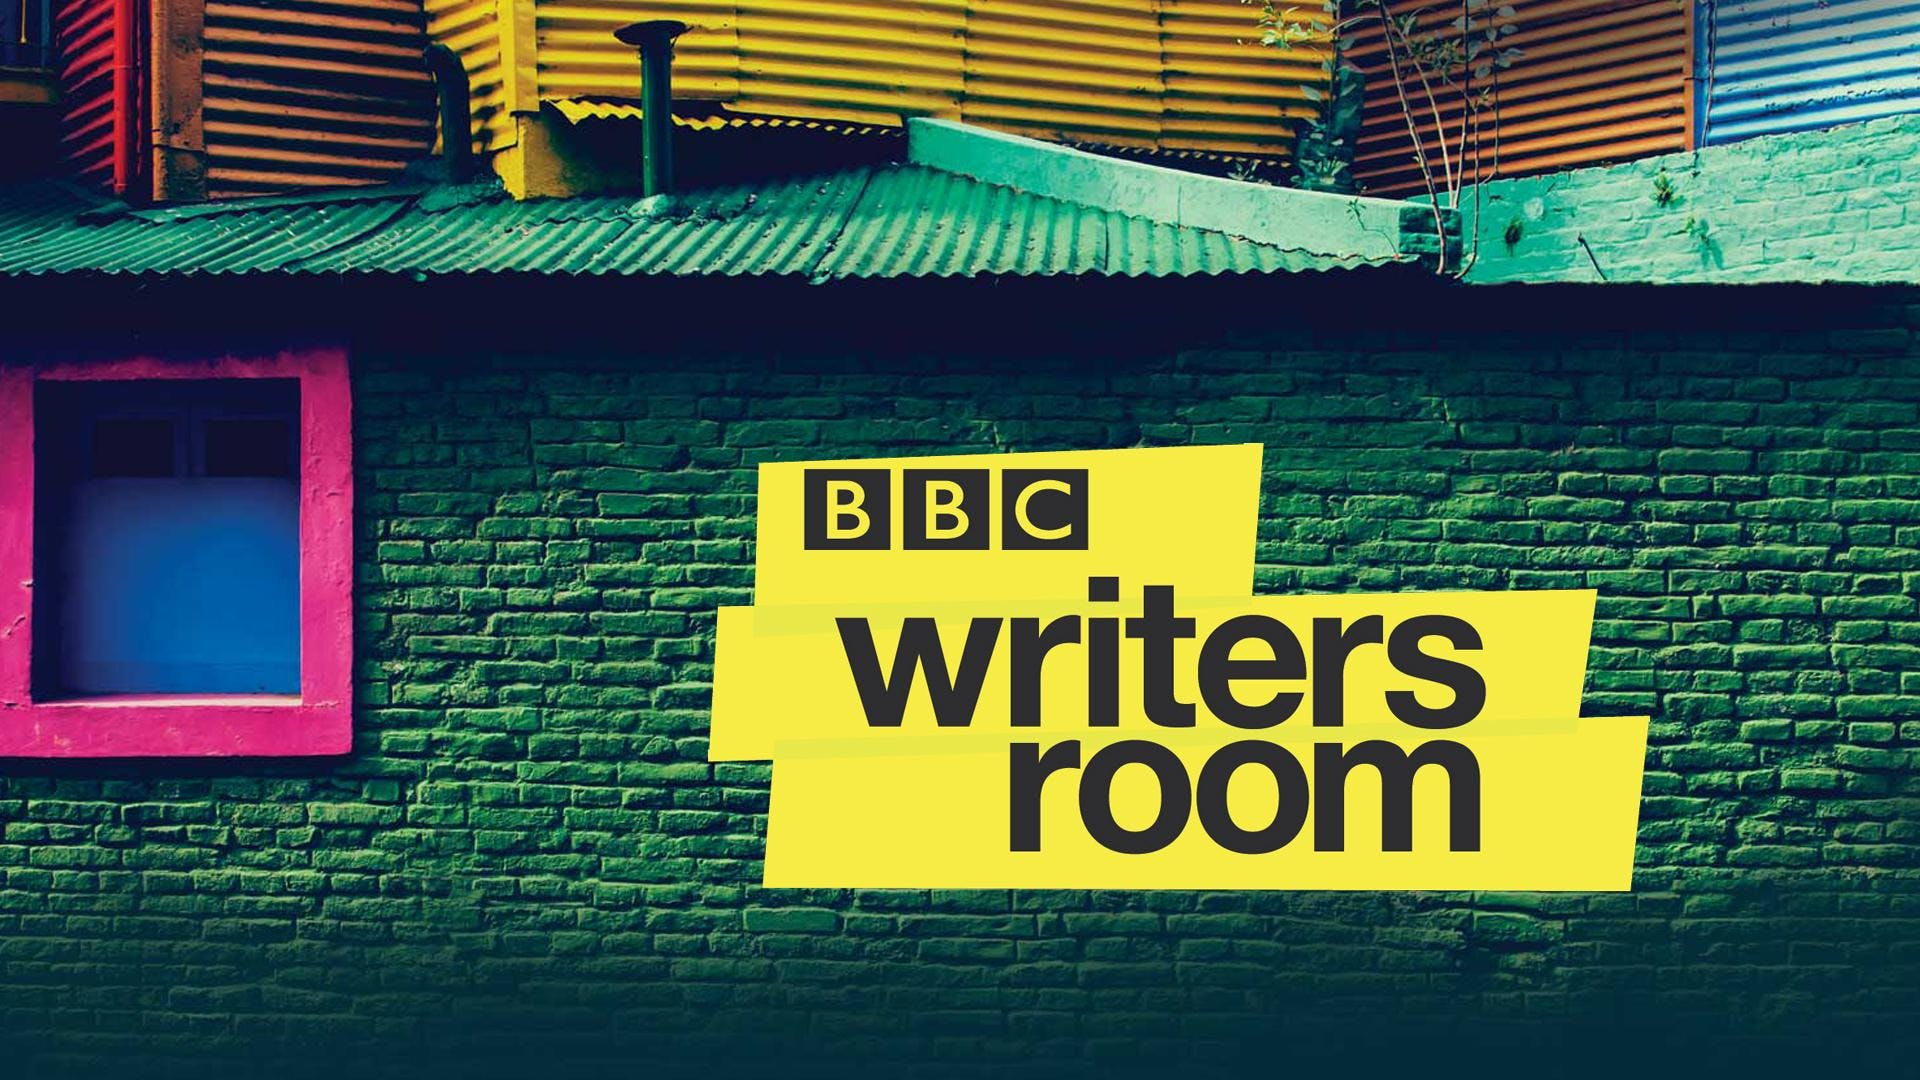 BBC Writersroom Accepting Unsolicited Drama Scripts